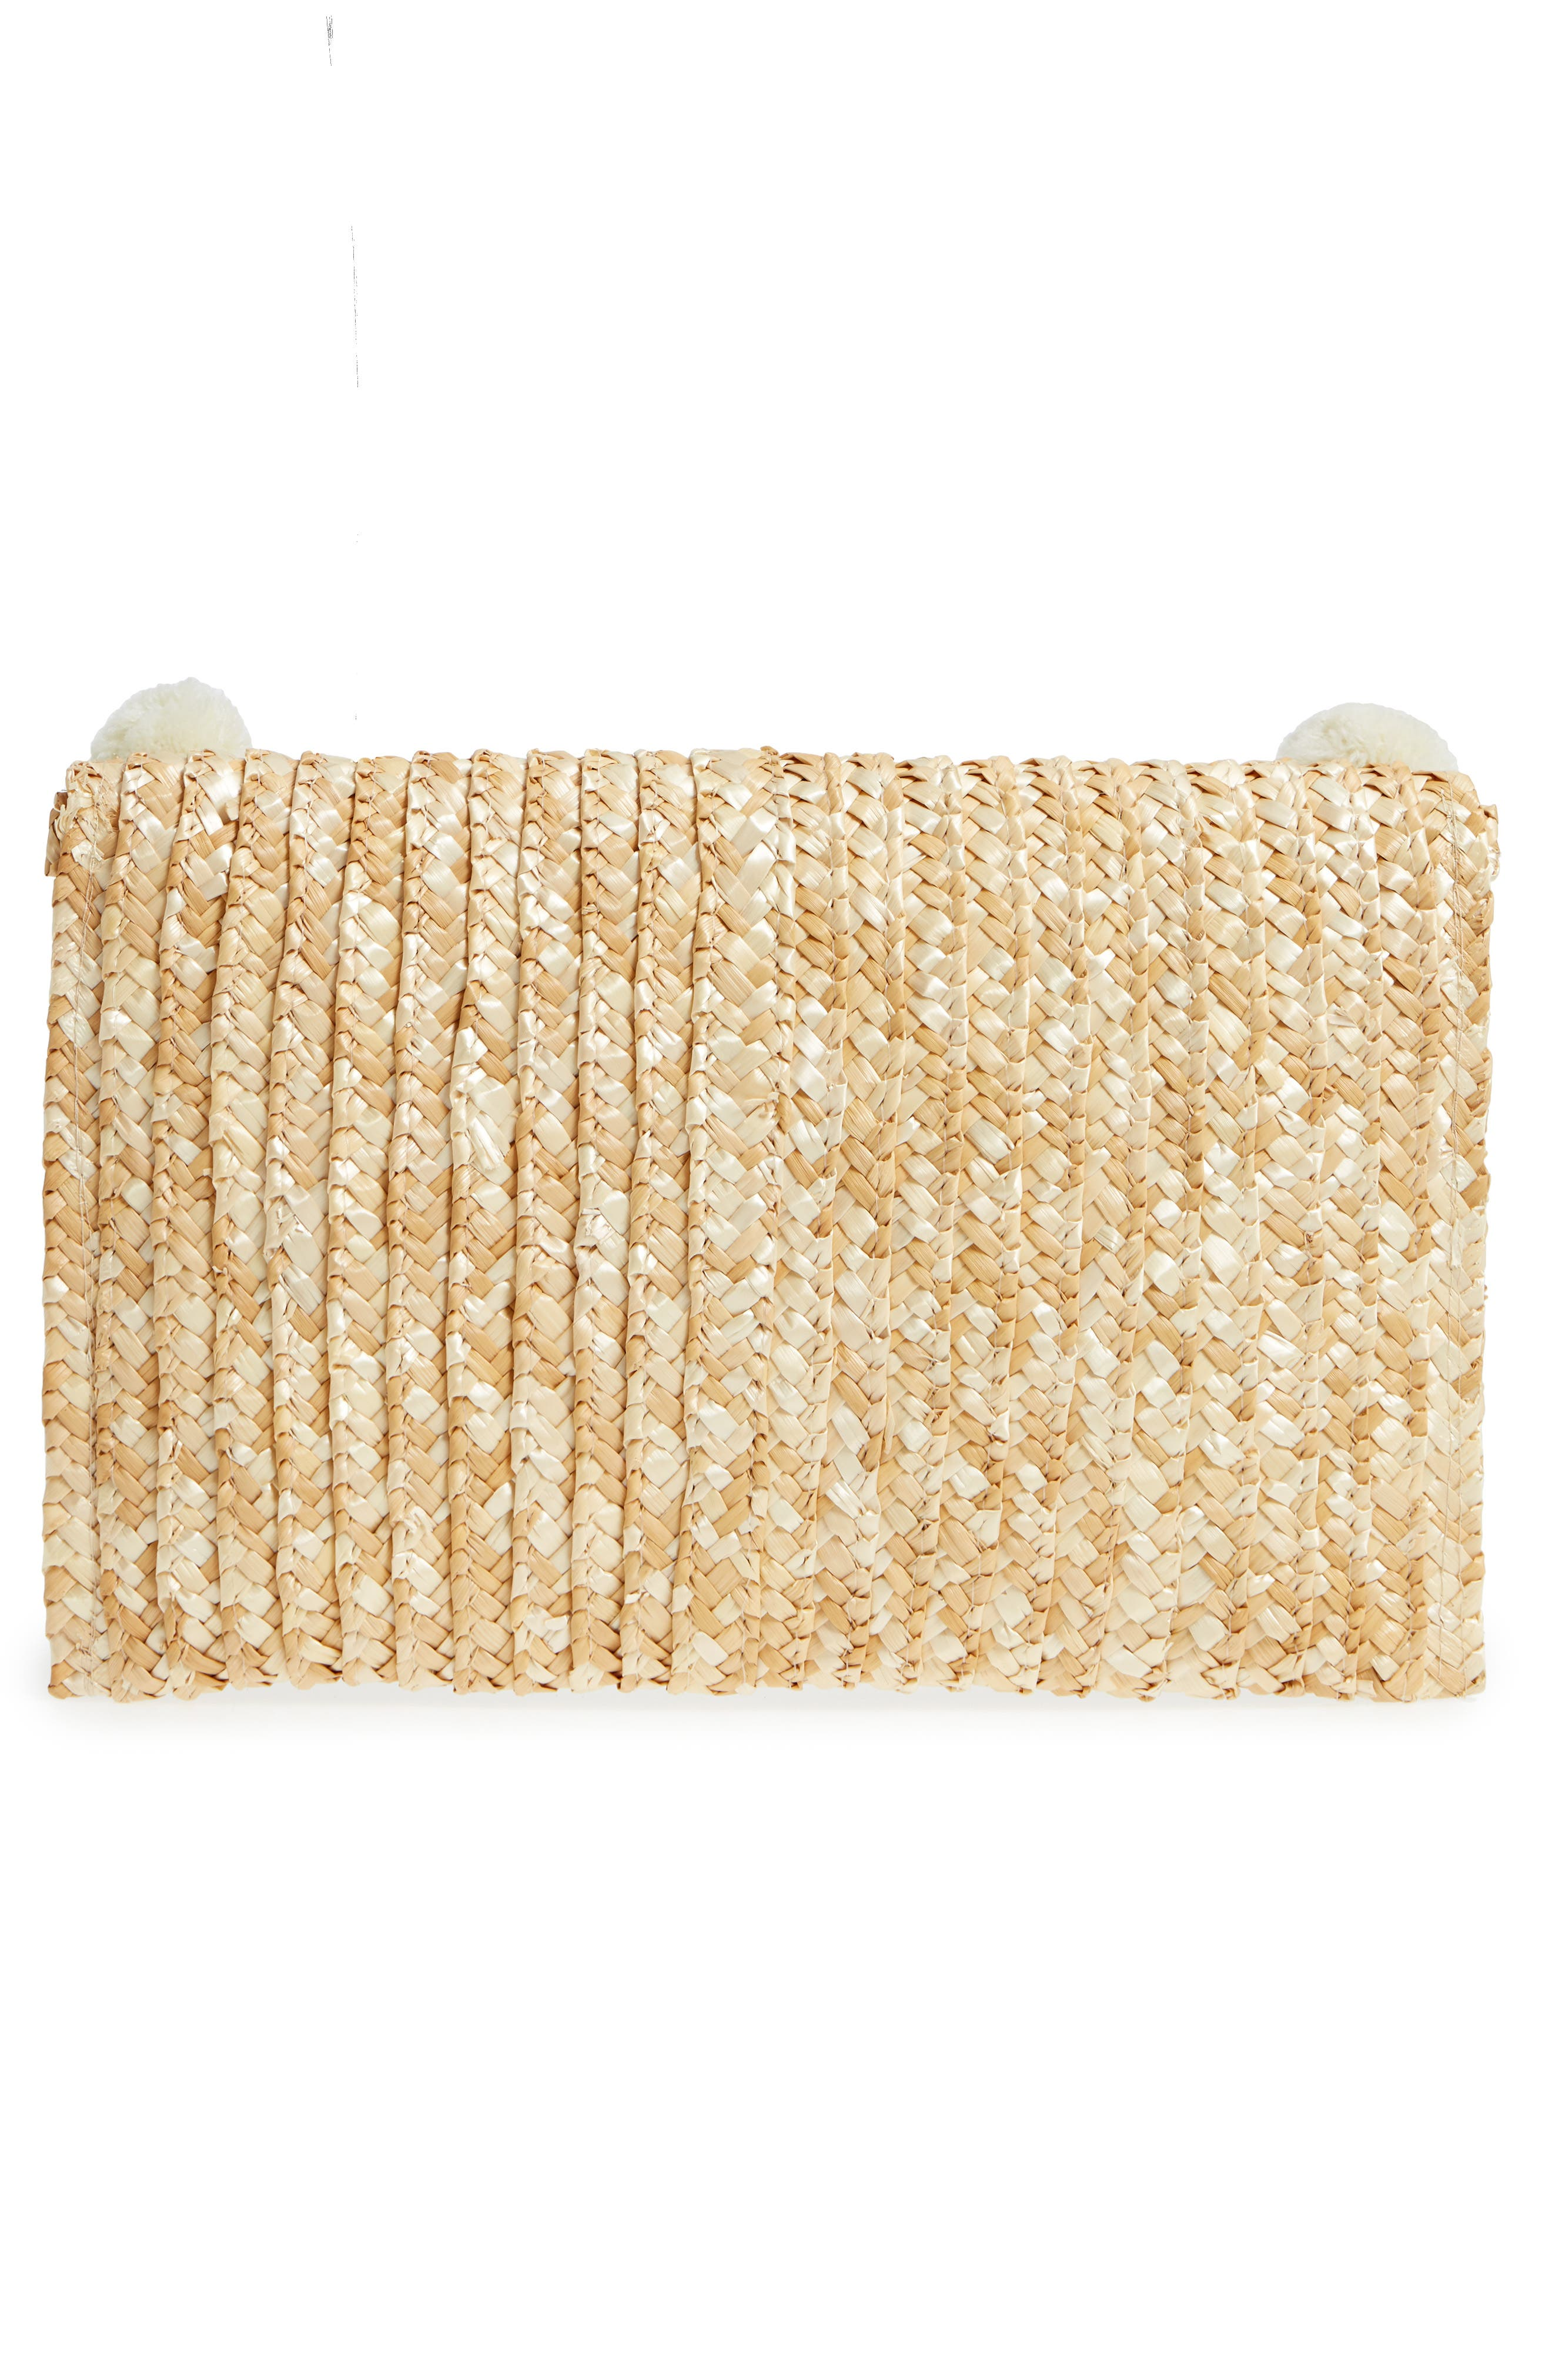 Fortuna Straw Clutch,                             Alternate thumbnail 3, color,                             256